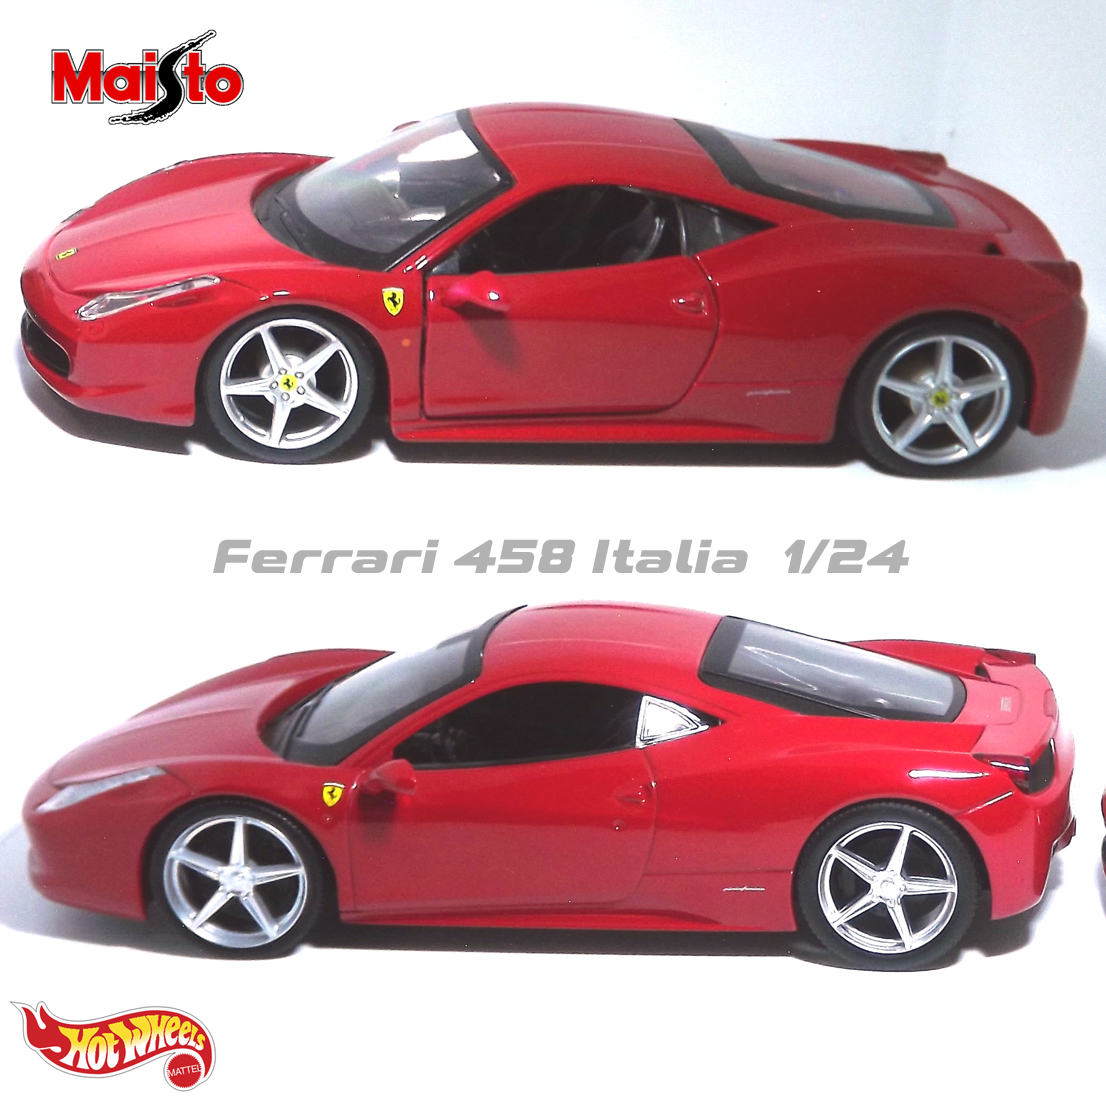 Ferrari 458 Itália Die-cast (Maisto x Hot Wheels)